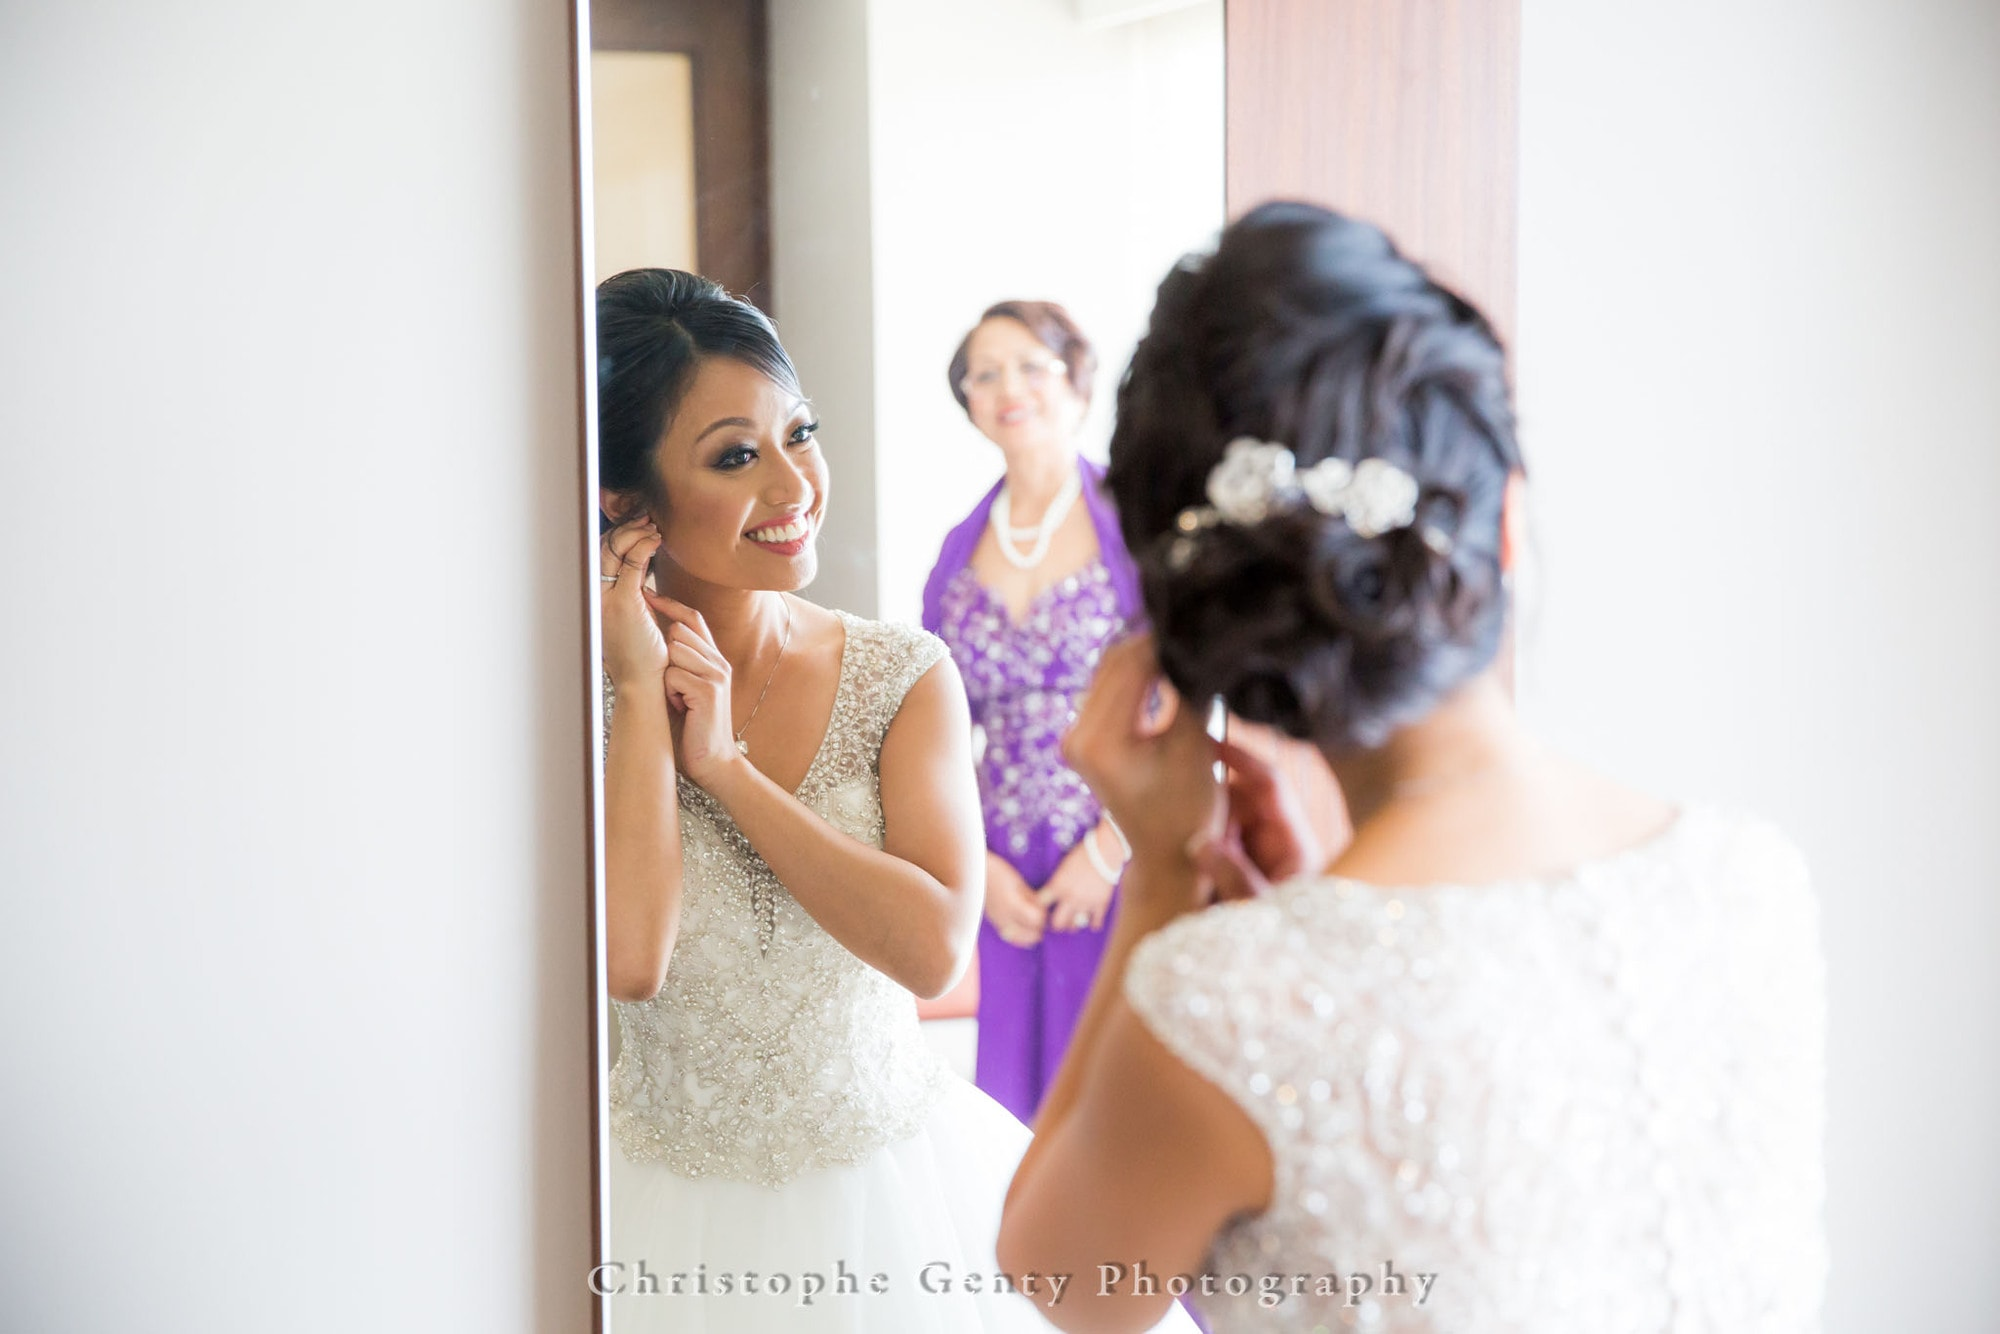 Wedding photography In San Francisco